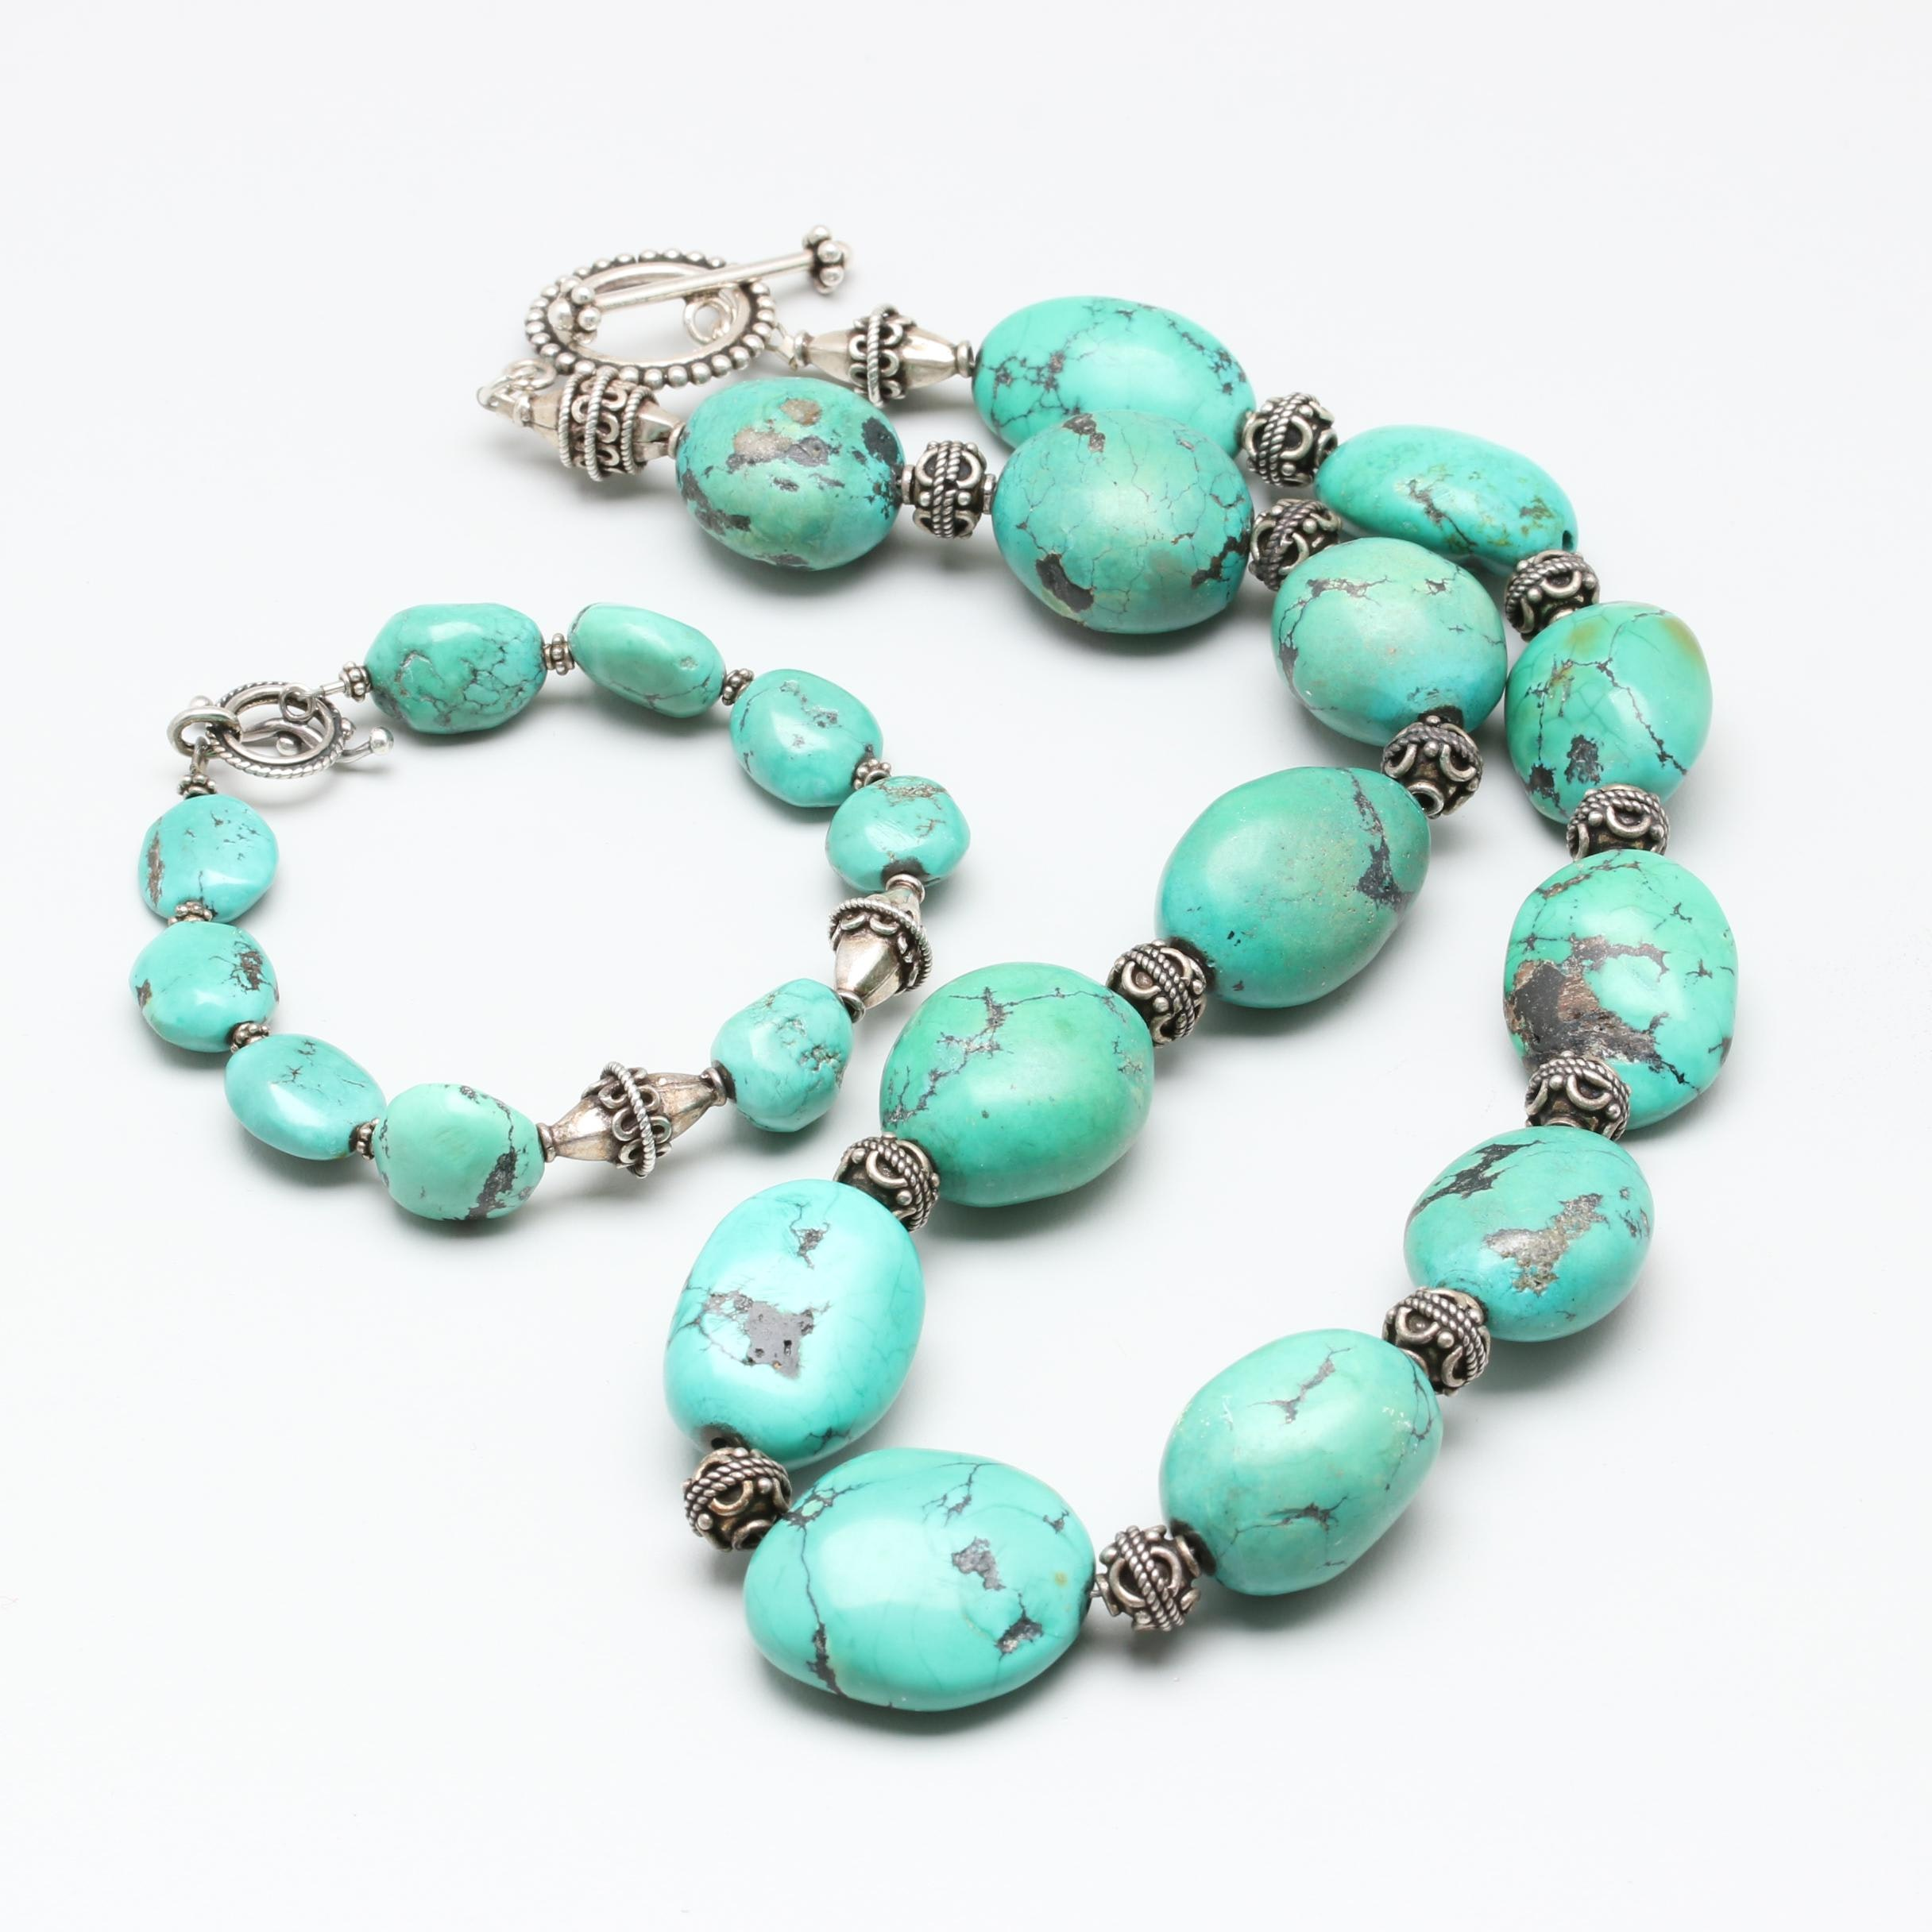 Sterling Silver Magnesite Necklace and Bracelet Including Bali Style Beads